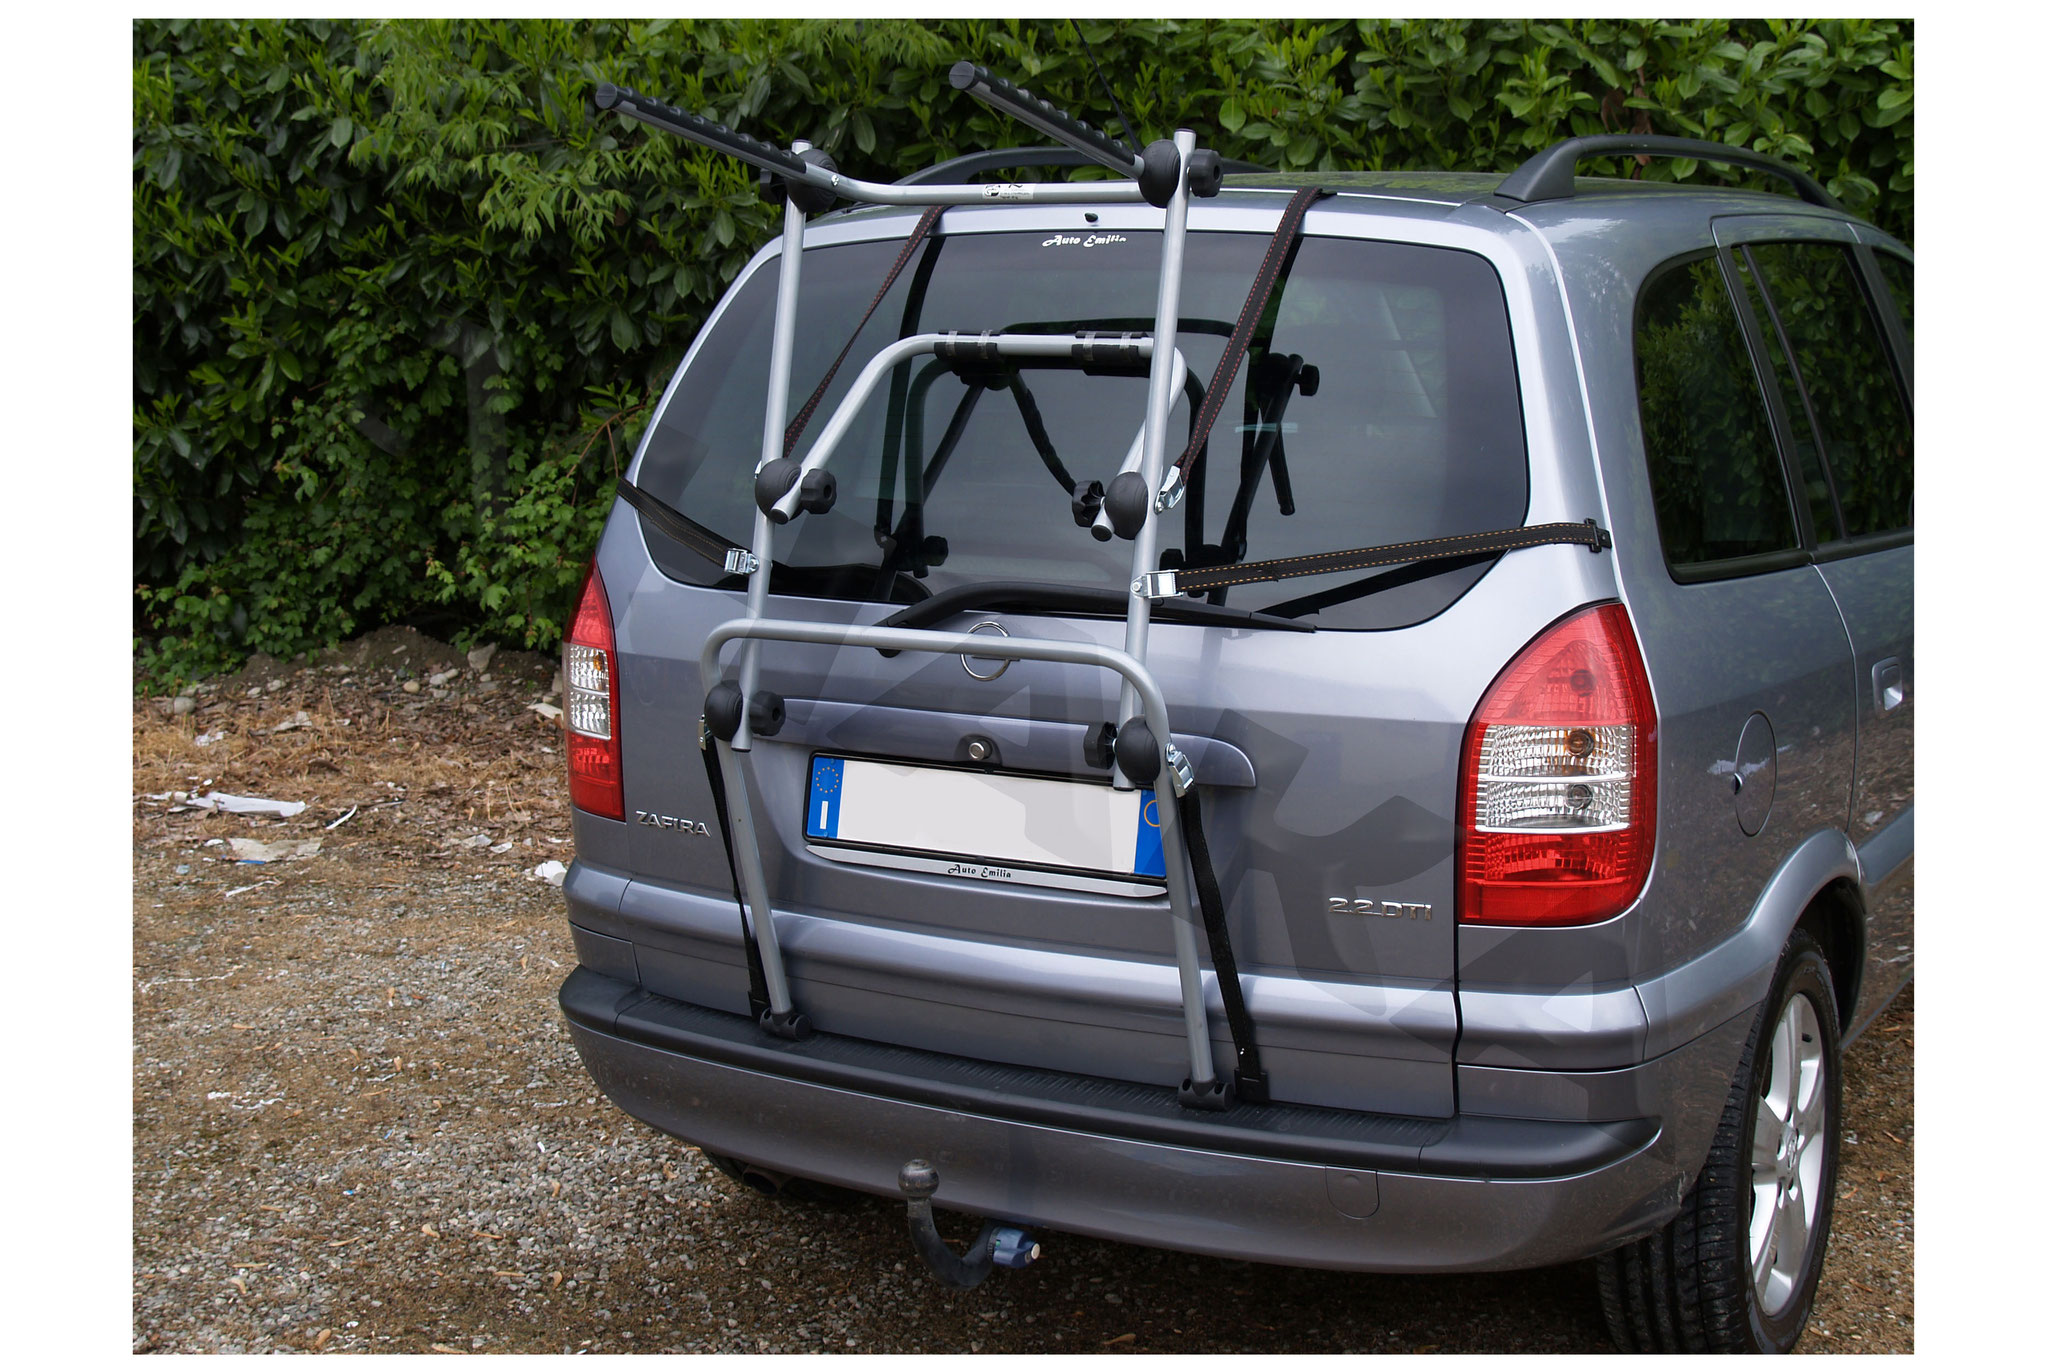 Dachträger Menabo Tema für Ford Focus II SW//Kombi ohne Reling 04-10 Stahl